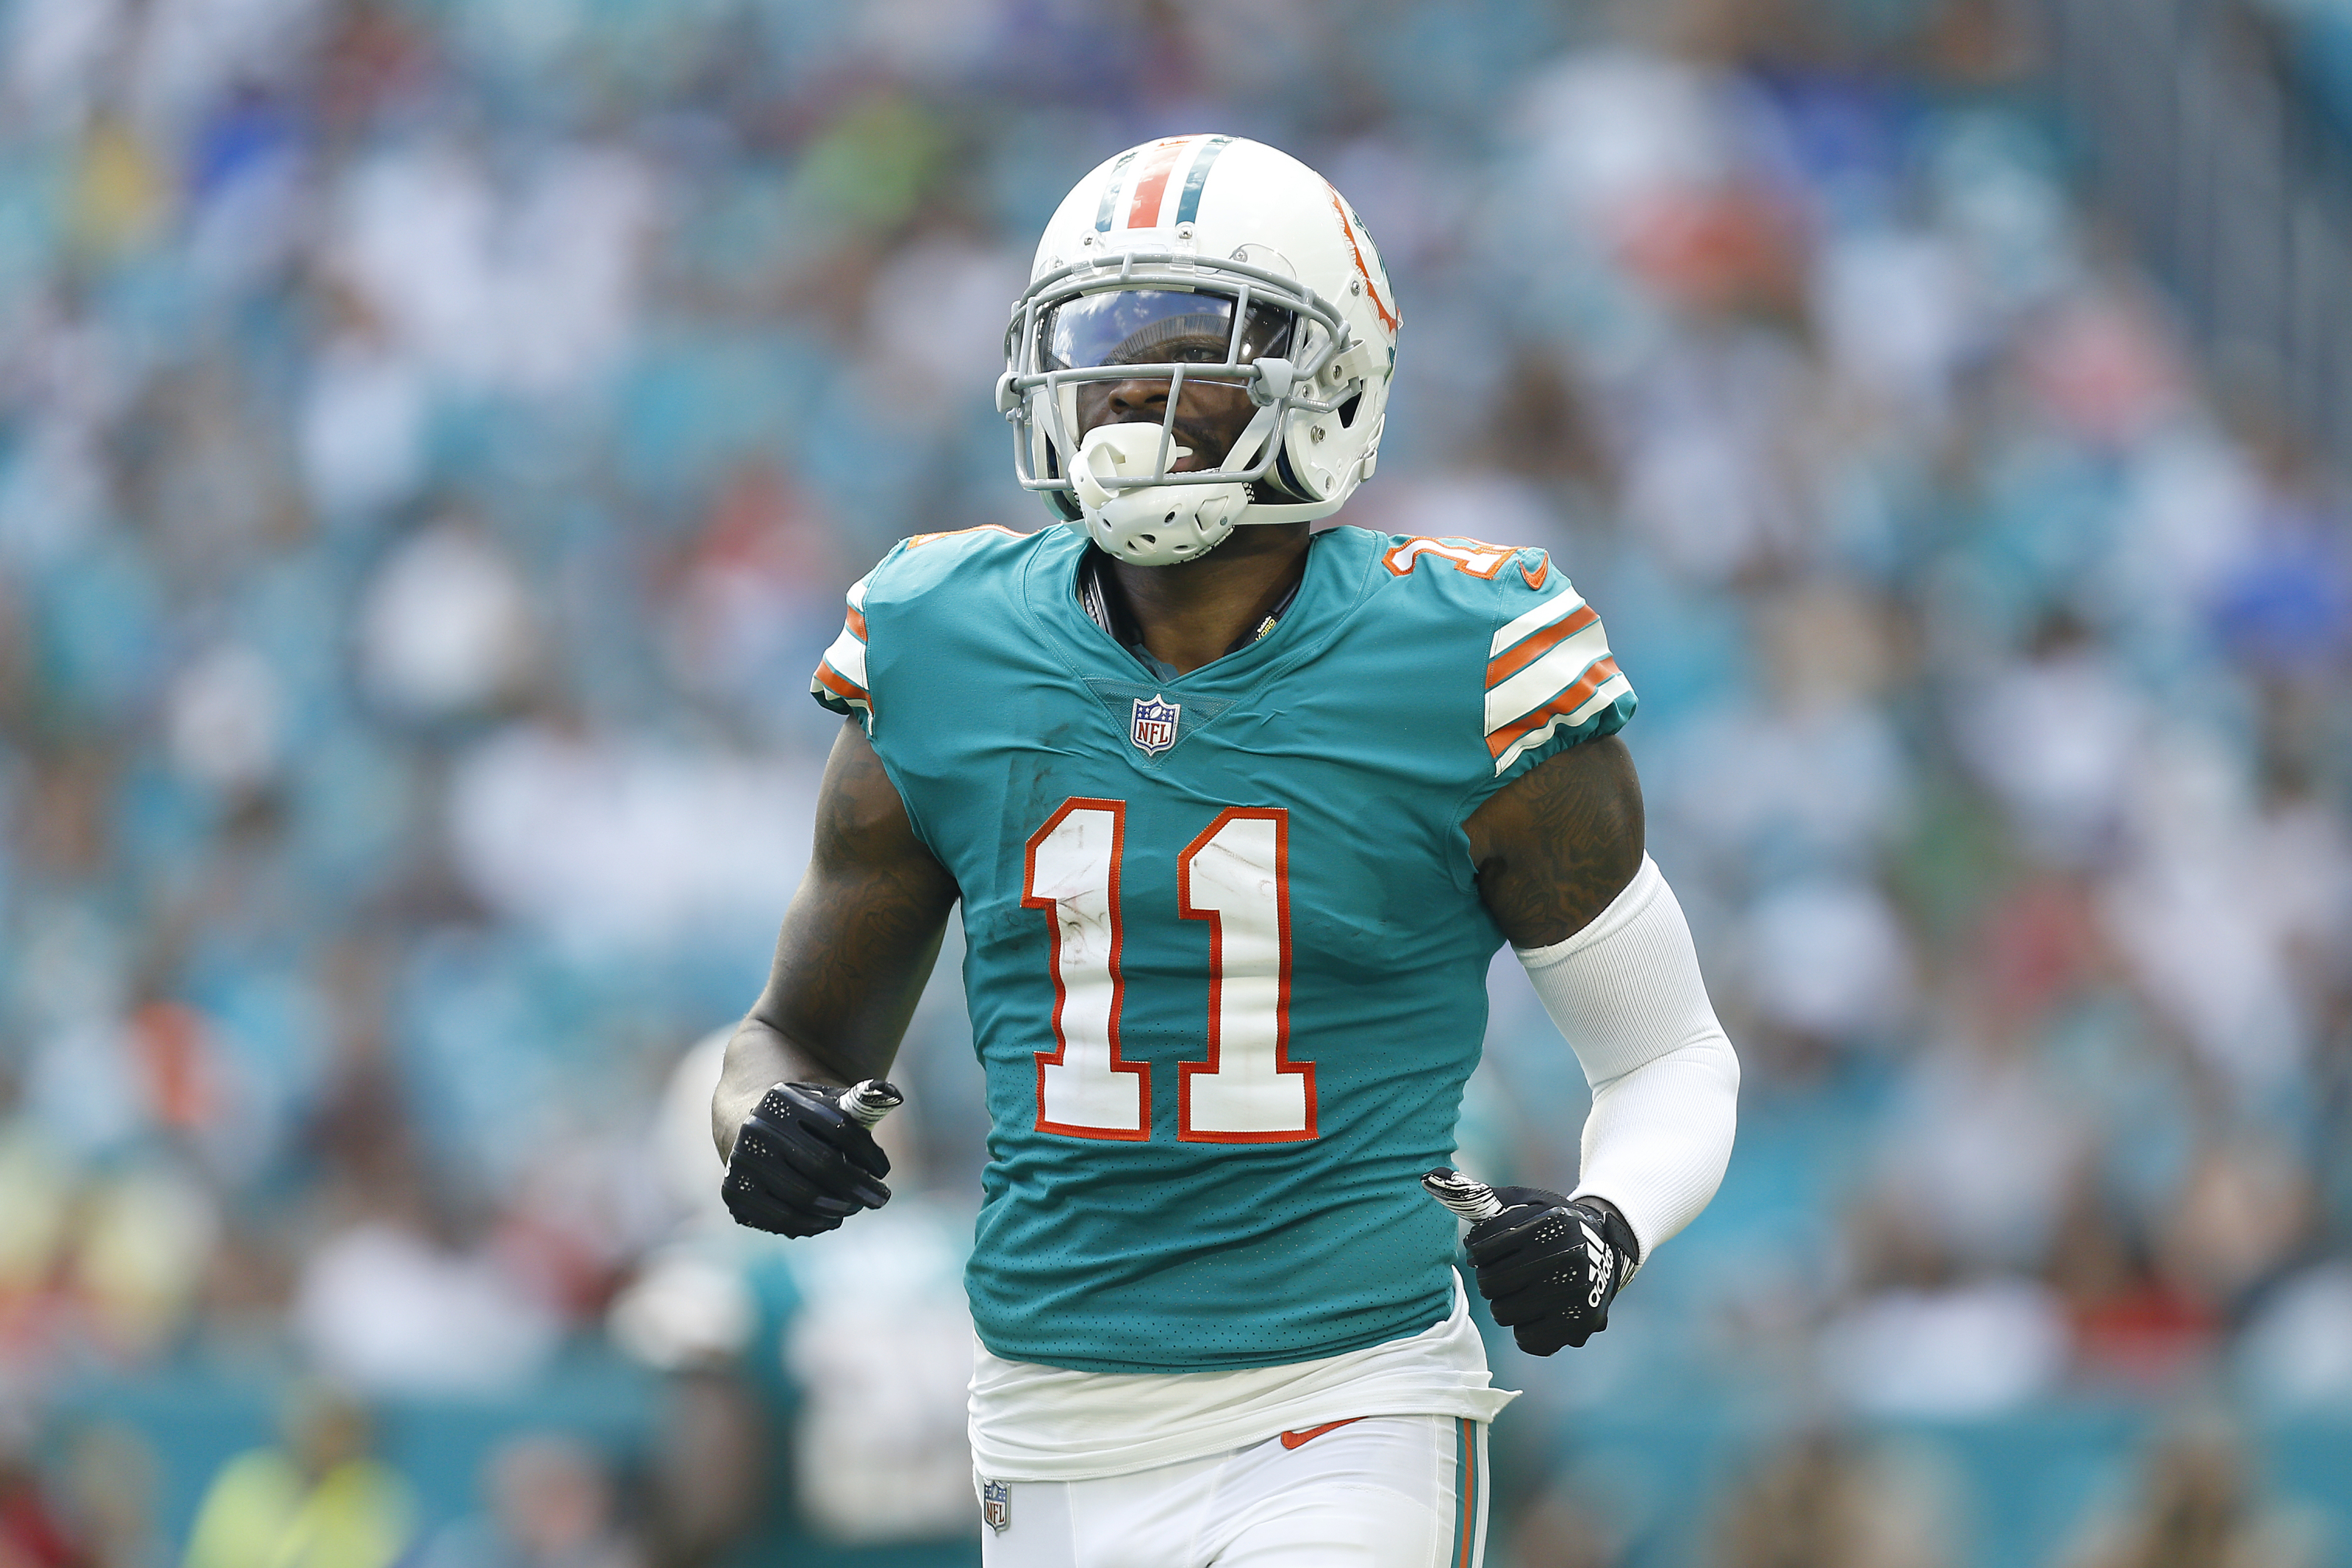 With Kenny Stills gone, will DeVante Parker finally breakout?